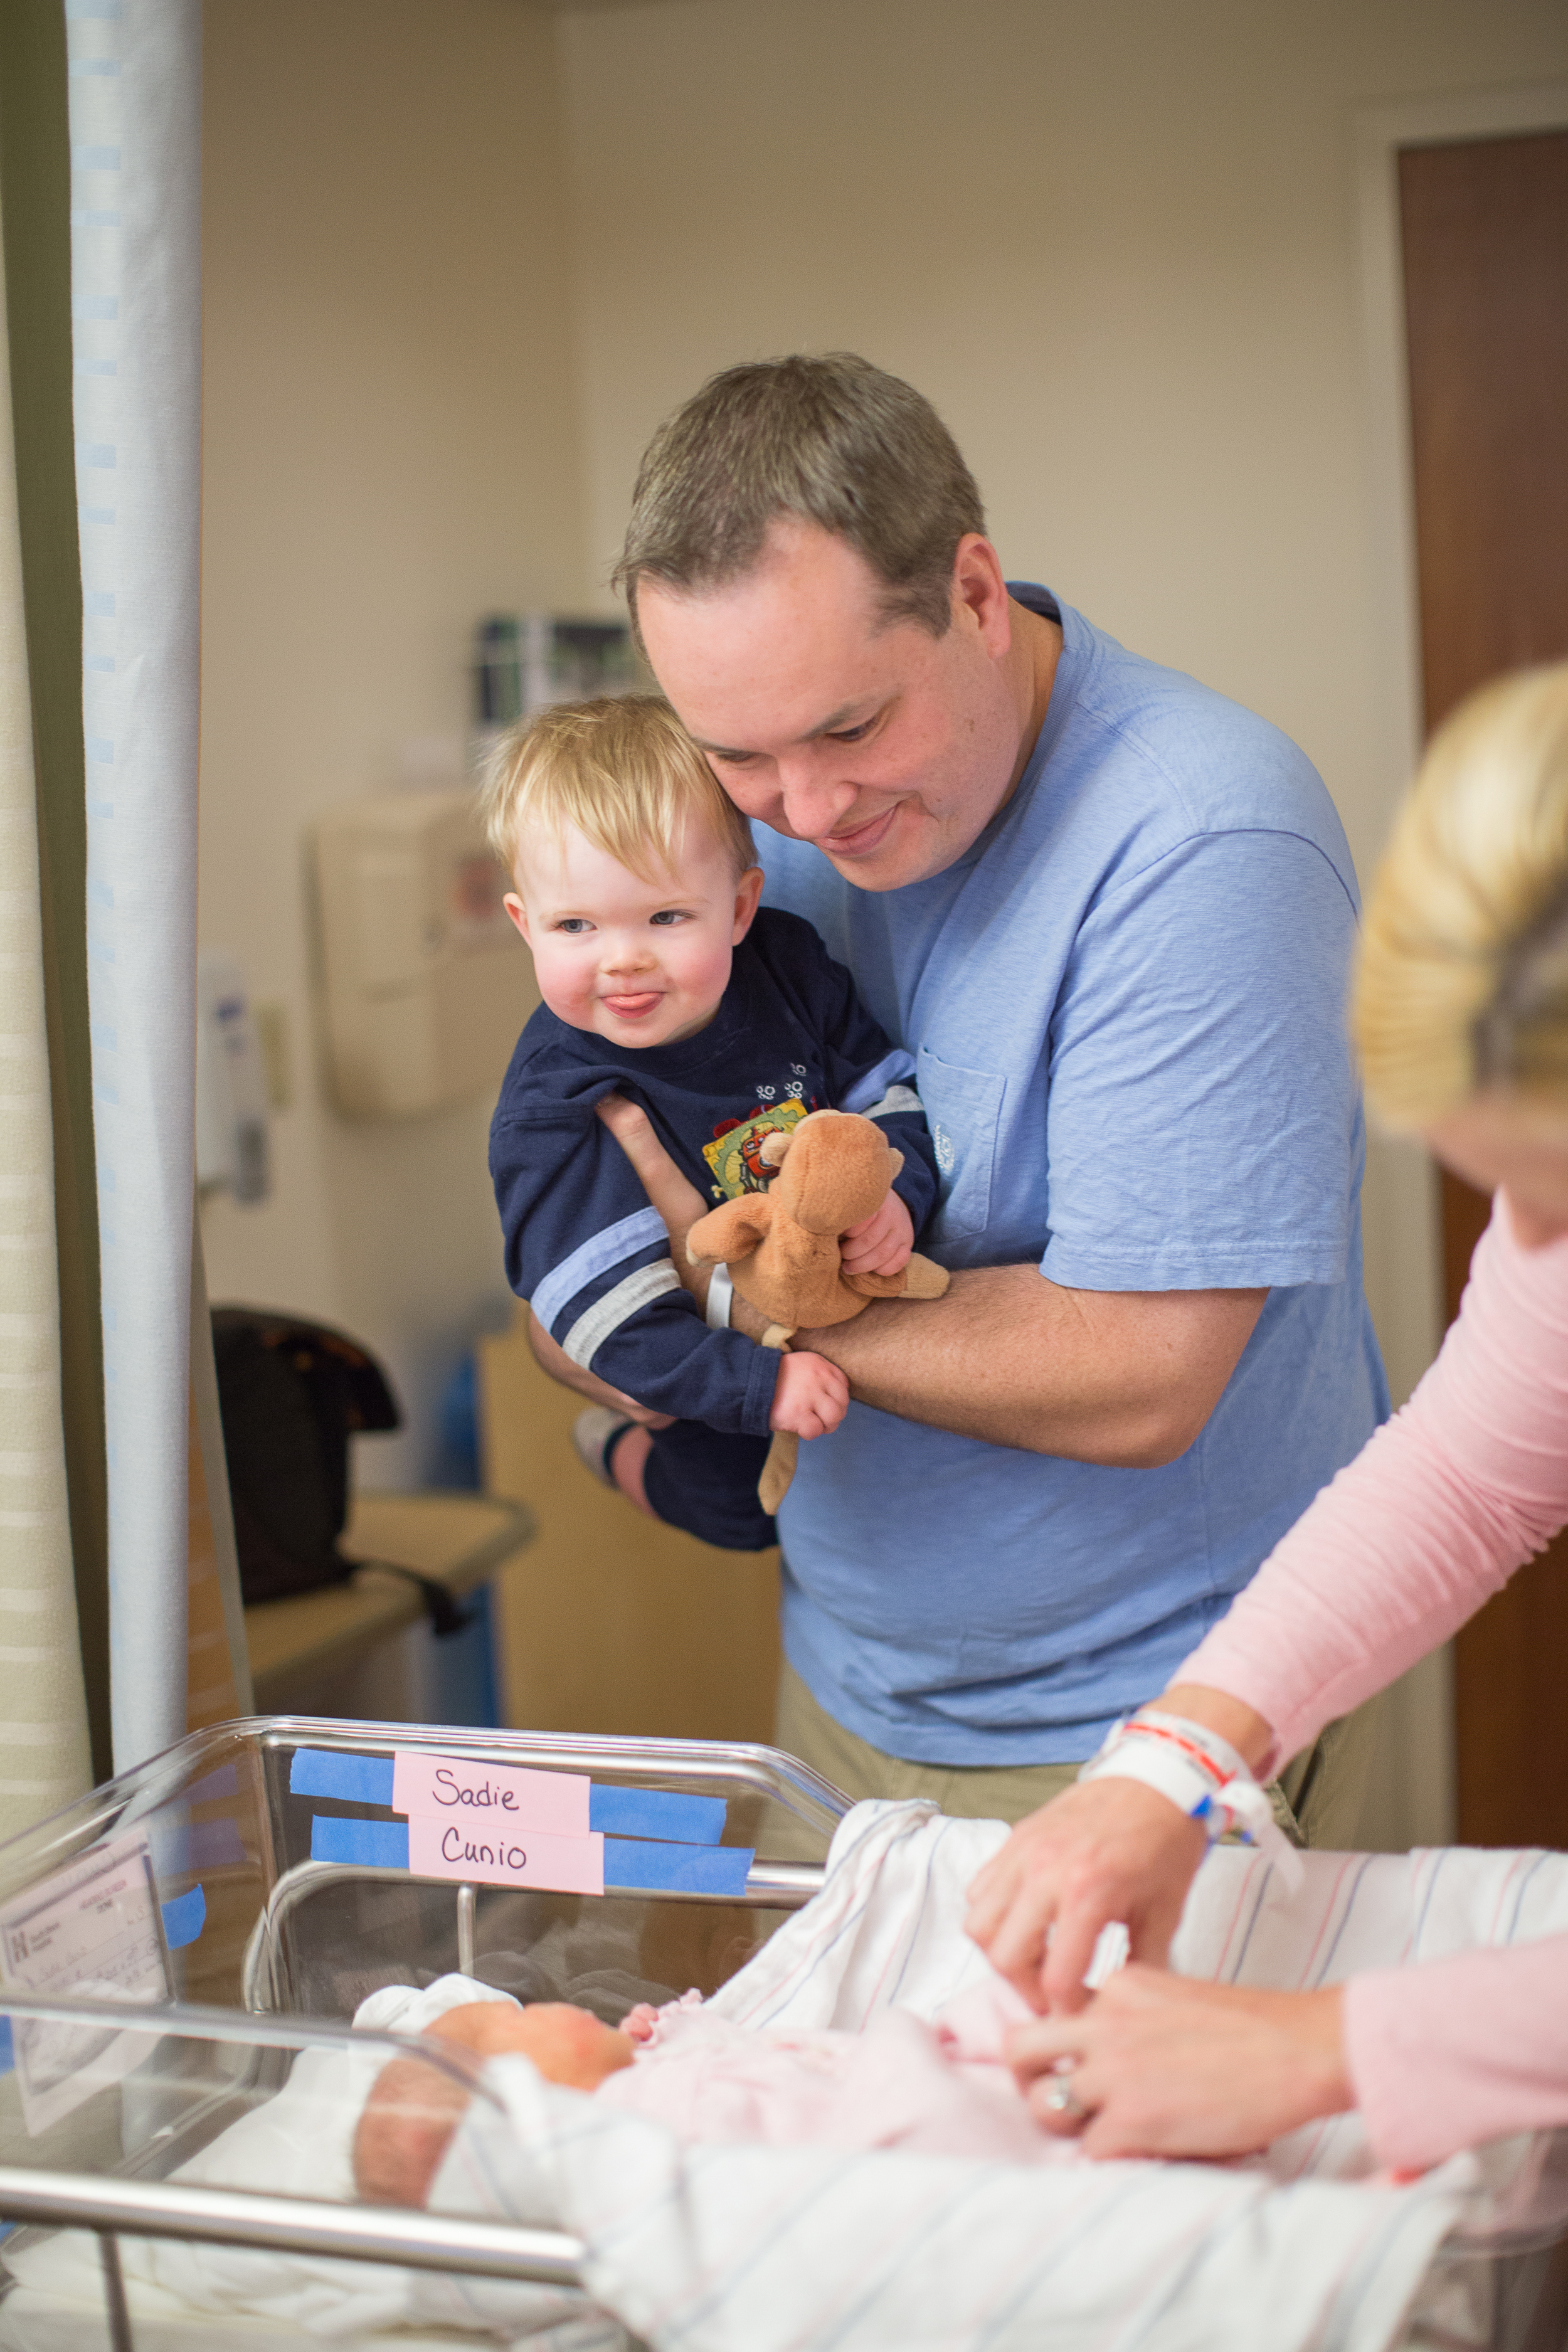 Dad looks at Newborn with toddler in his arms Boston Massachusetts